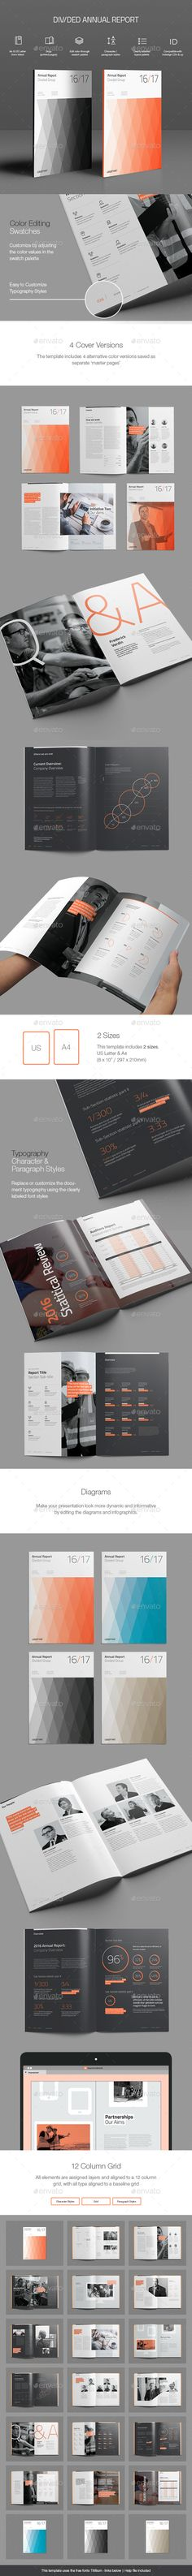 Divided Annual Report Template InDesign INDD #design Download: http://graphicriver.net/item/divided-annual-report-template/13185075?ref=ksioks